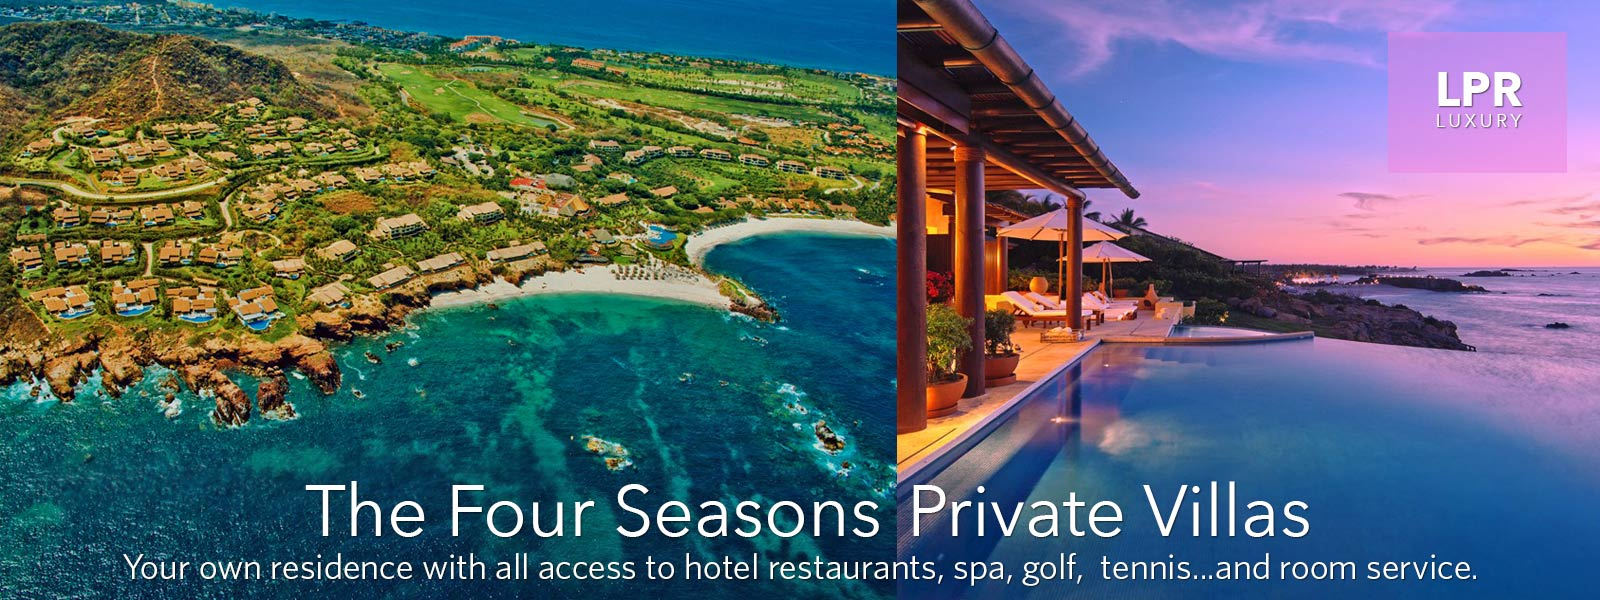 Four Seasons Private Villas - Explore Punta Mita Mexico - Puerto Vallarta - Riviera Nayarit